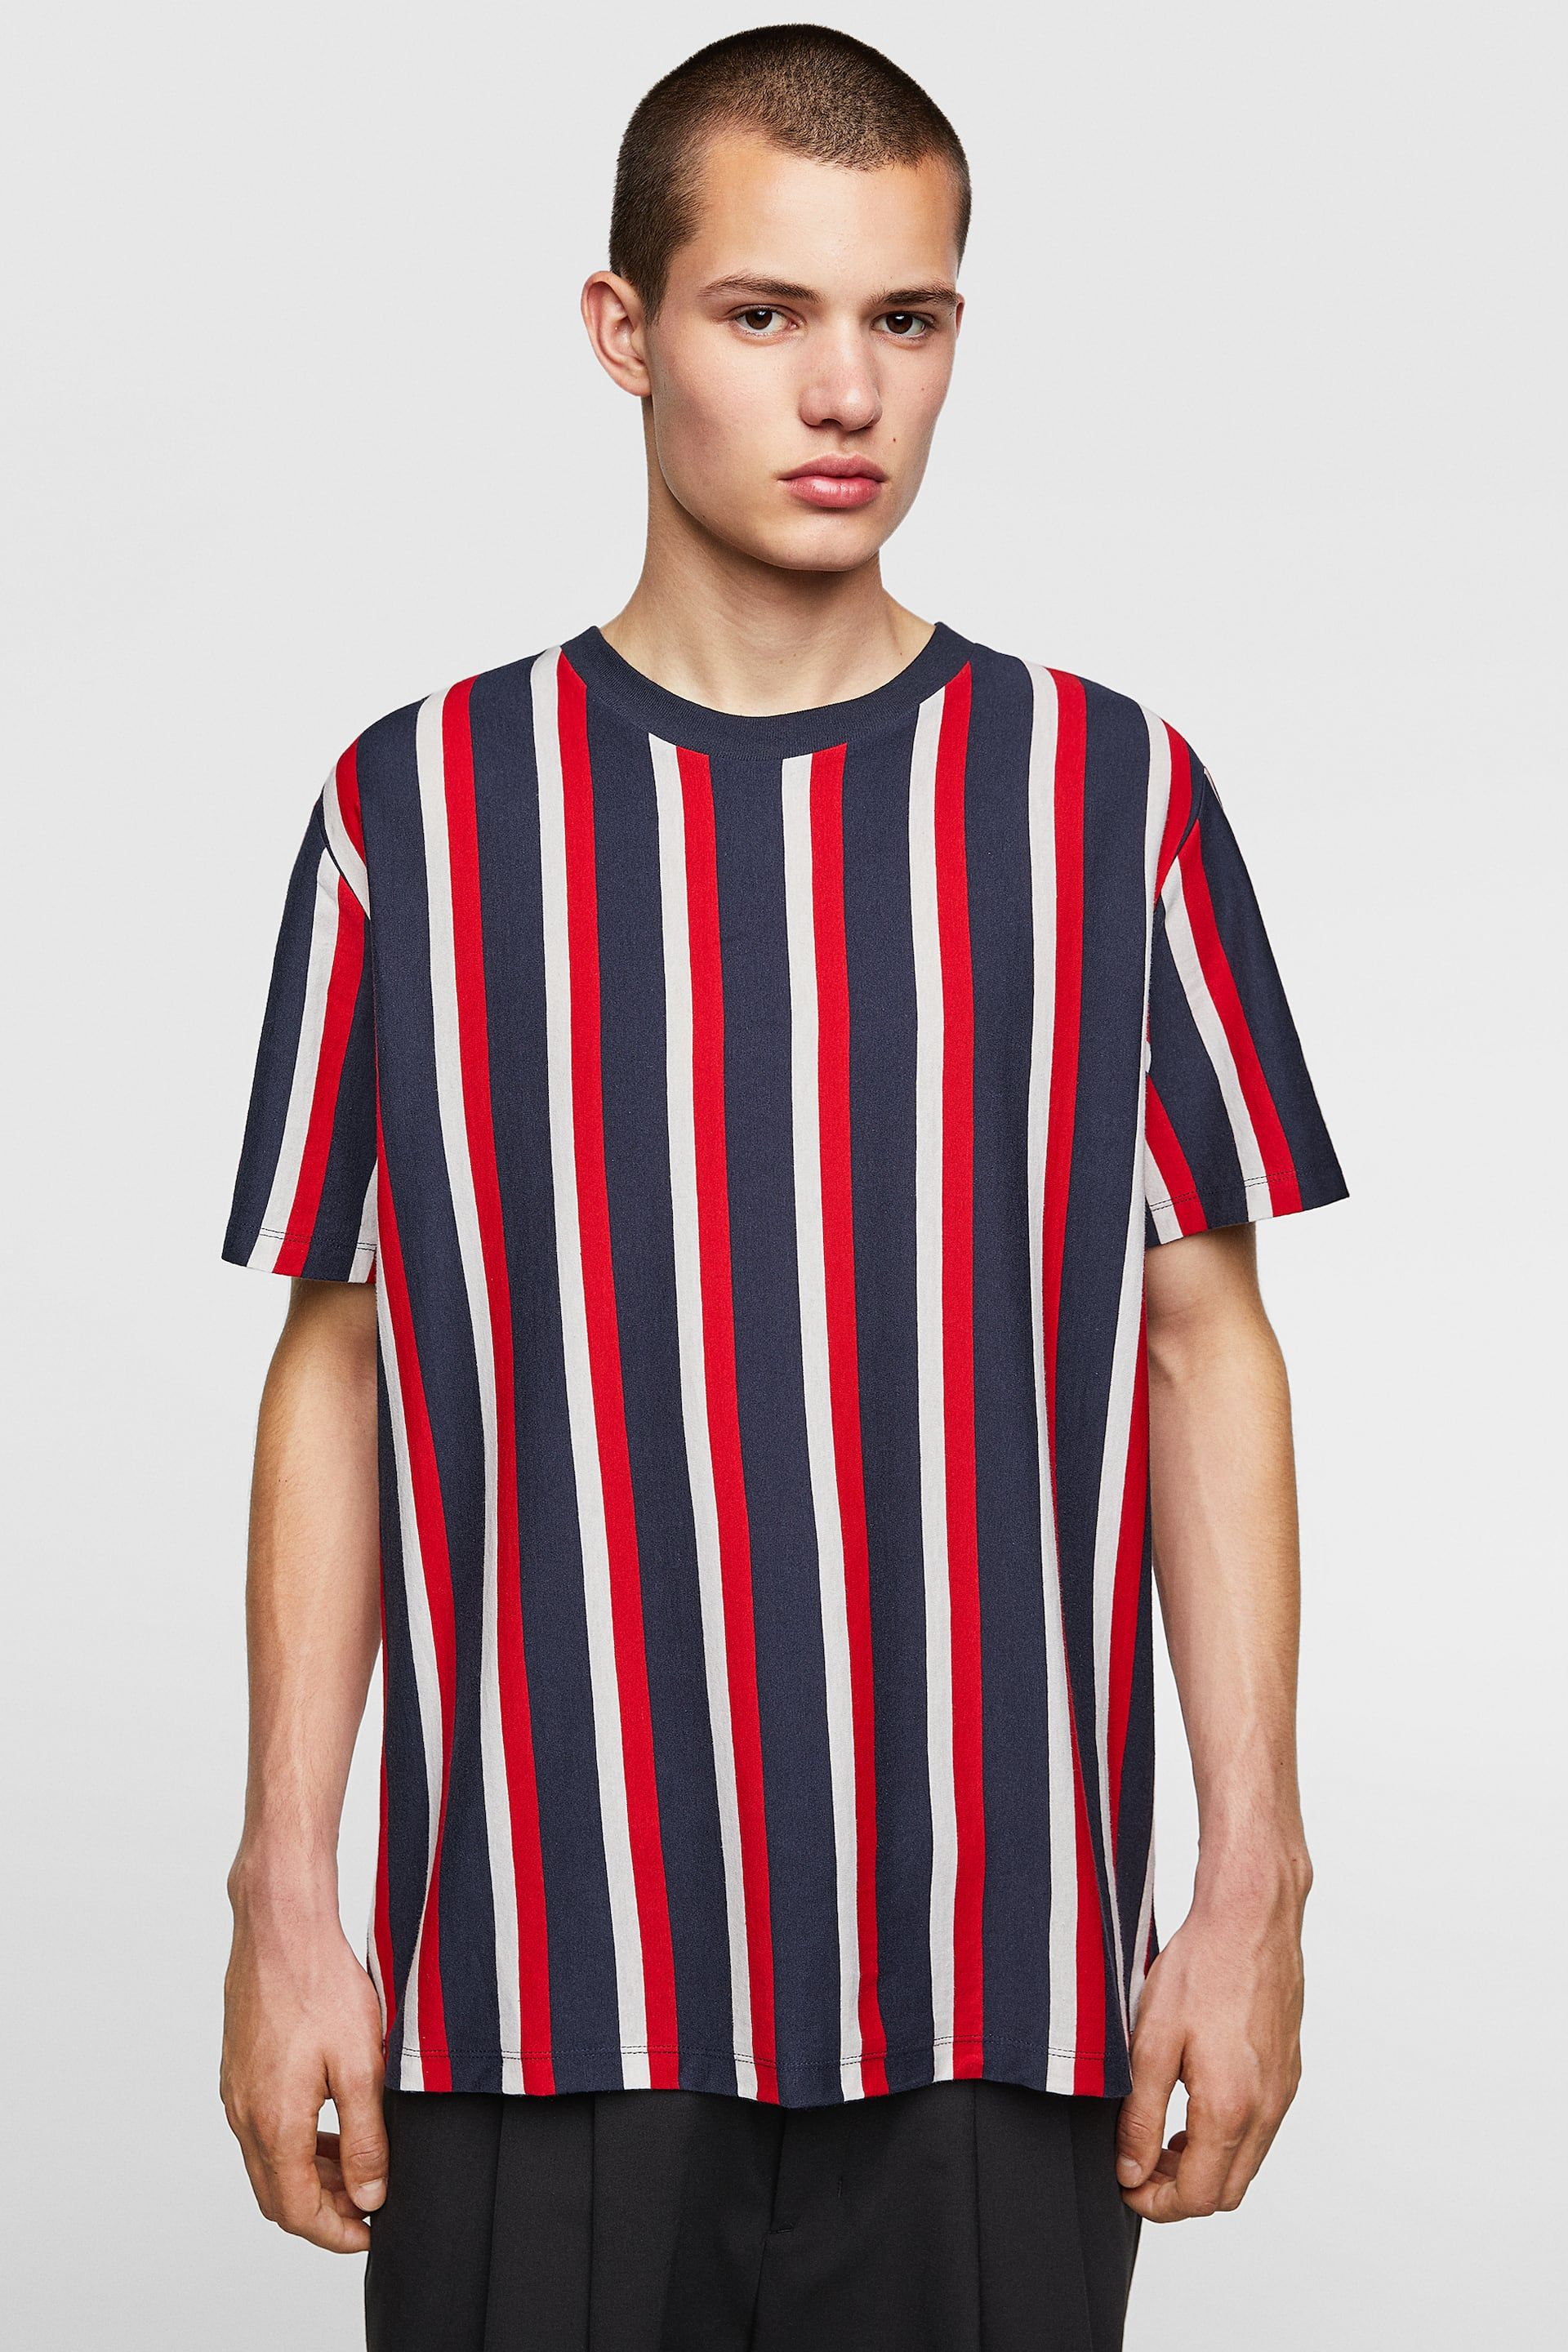 27342070 T-SHIRT WITH VERTICAL STRIPES - Item available in more colors ...